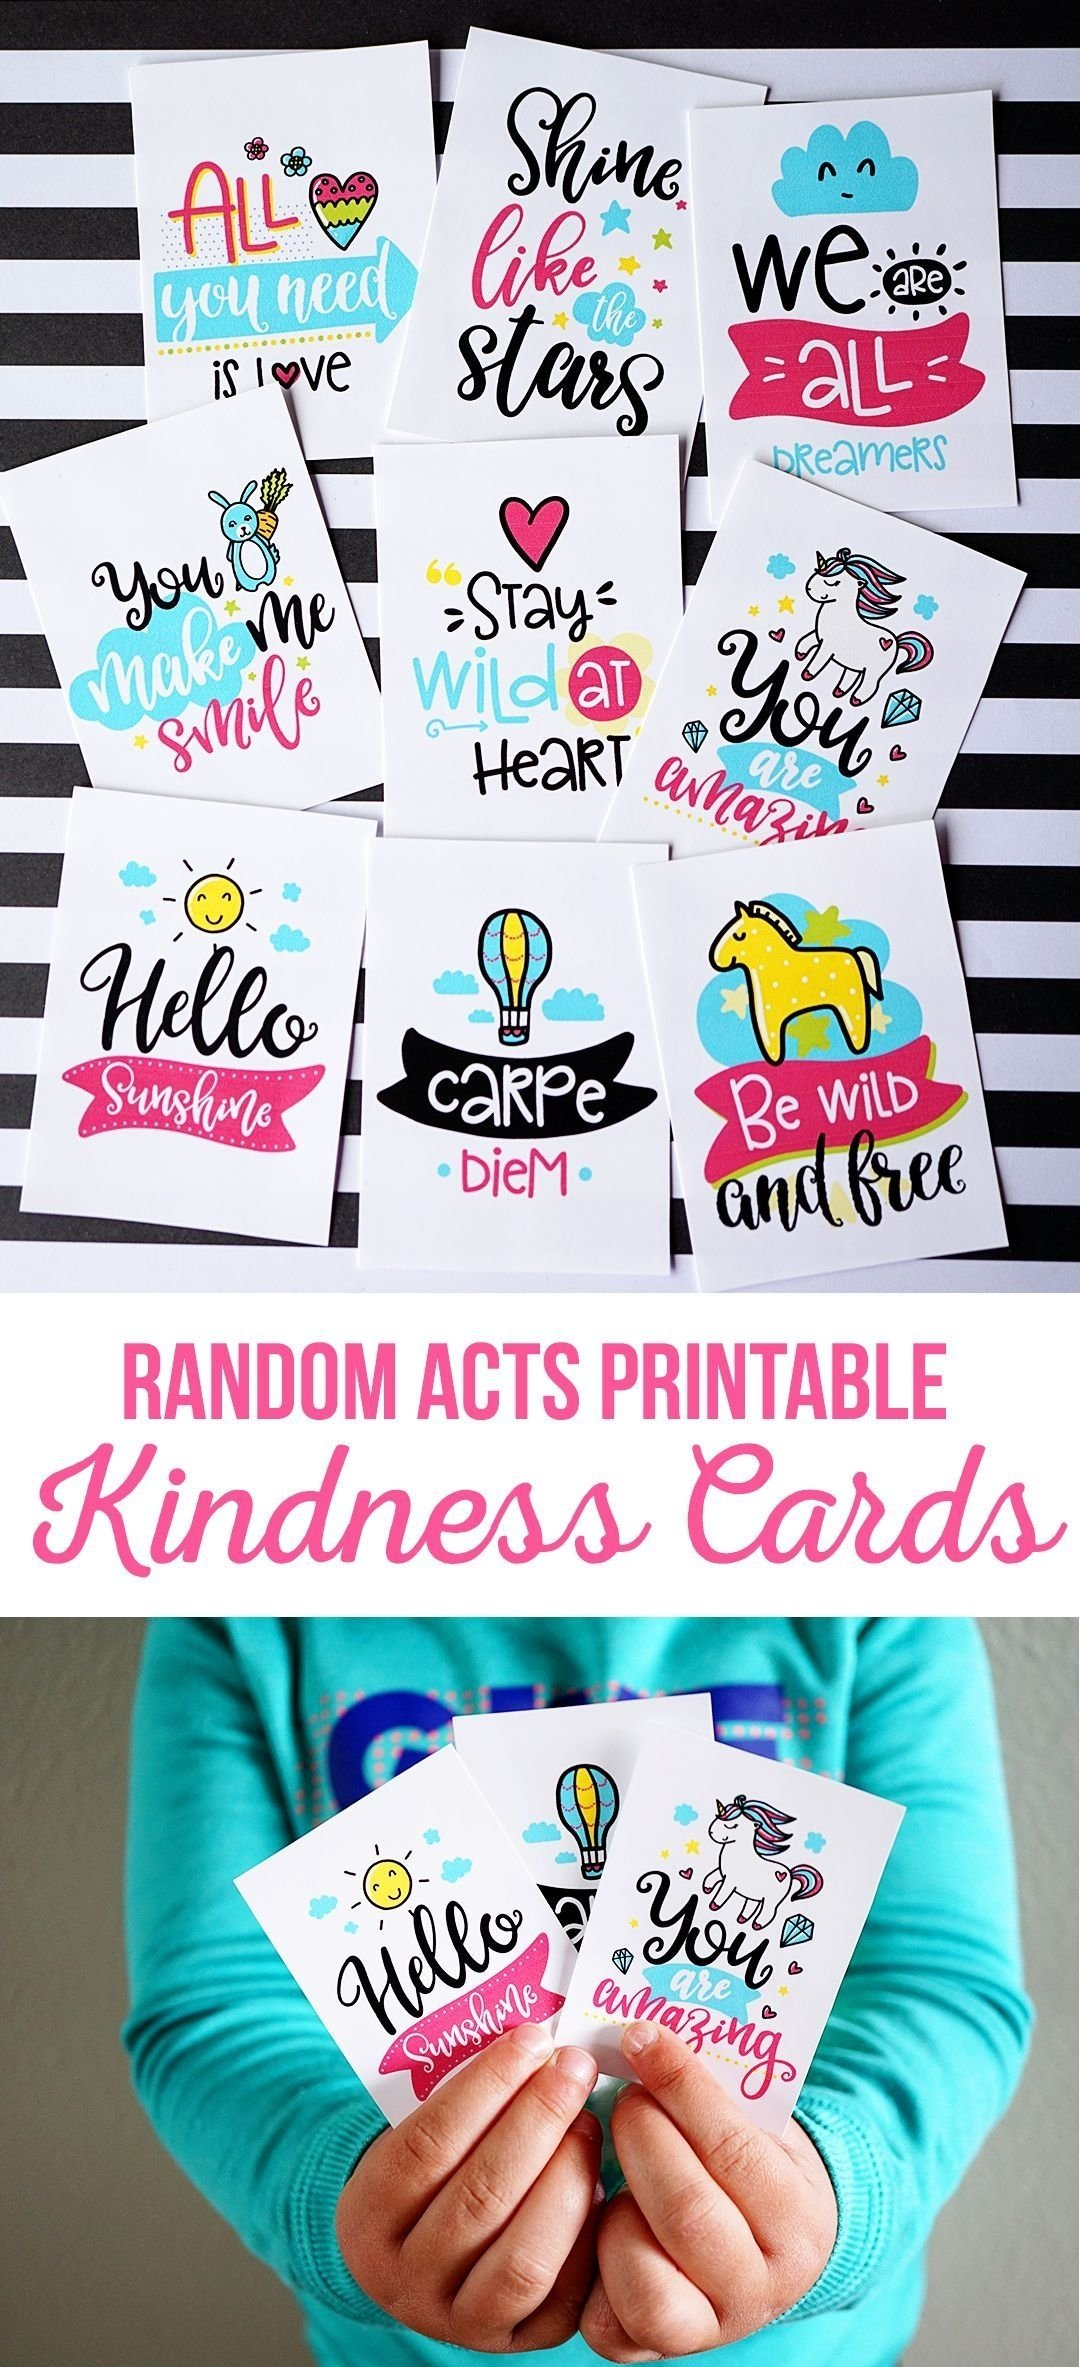 10 Trendy Service Project Ideas For Kids printable random acts kindness cards service project ideas 2020